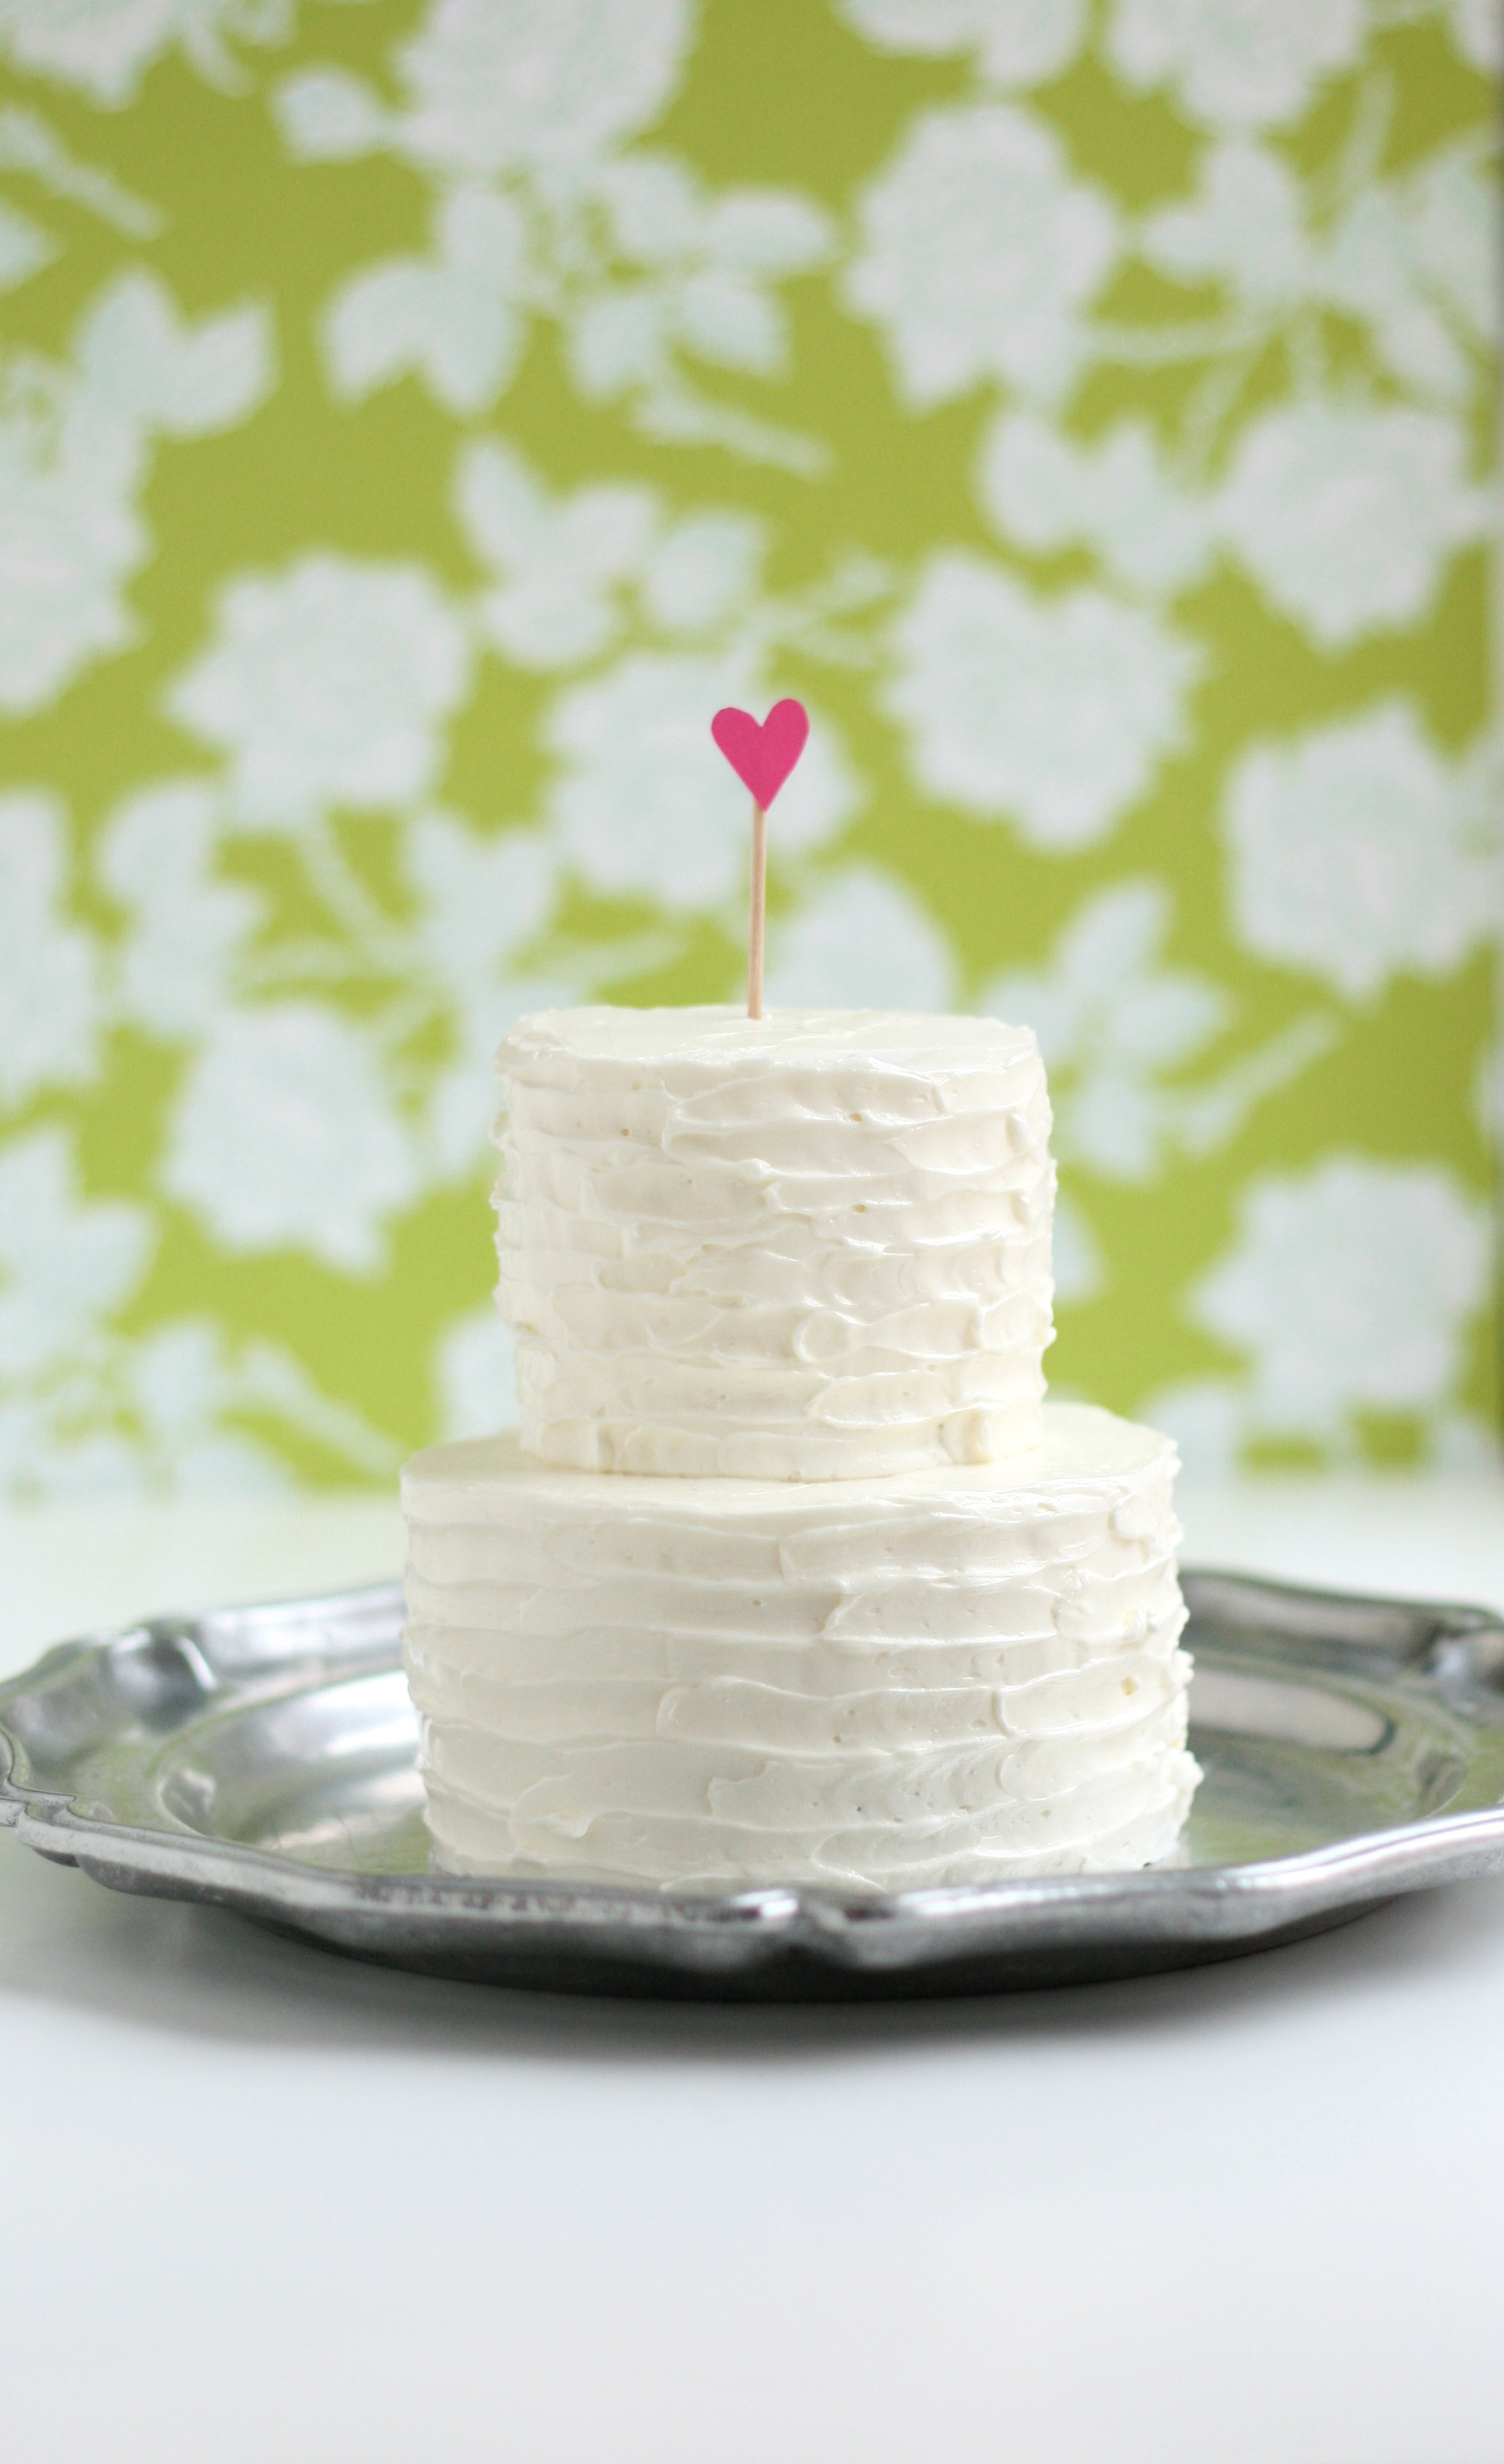 Cake Images For Marriage : Anniversary Cake - The Fauxmartha